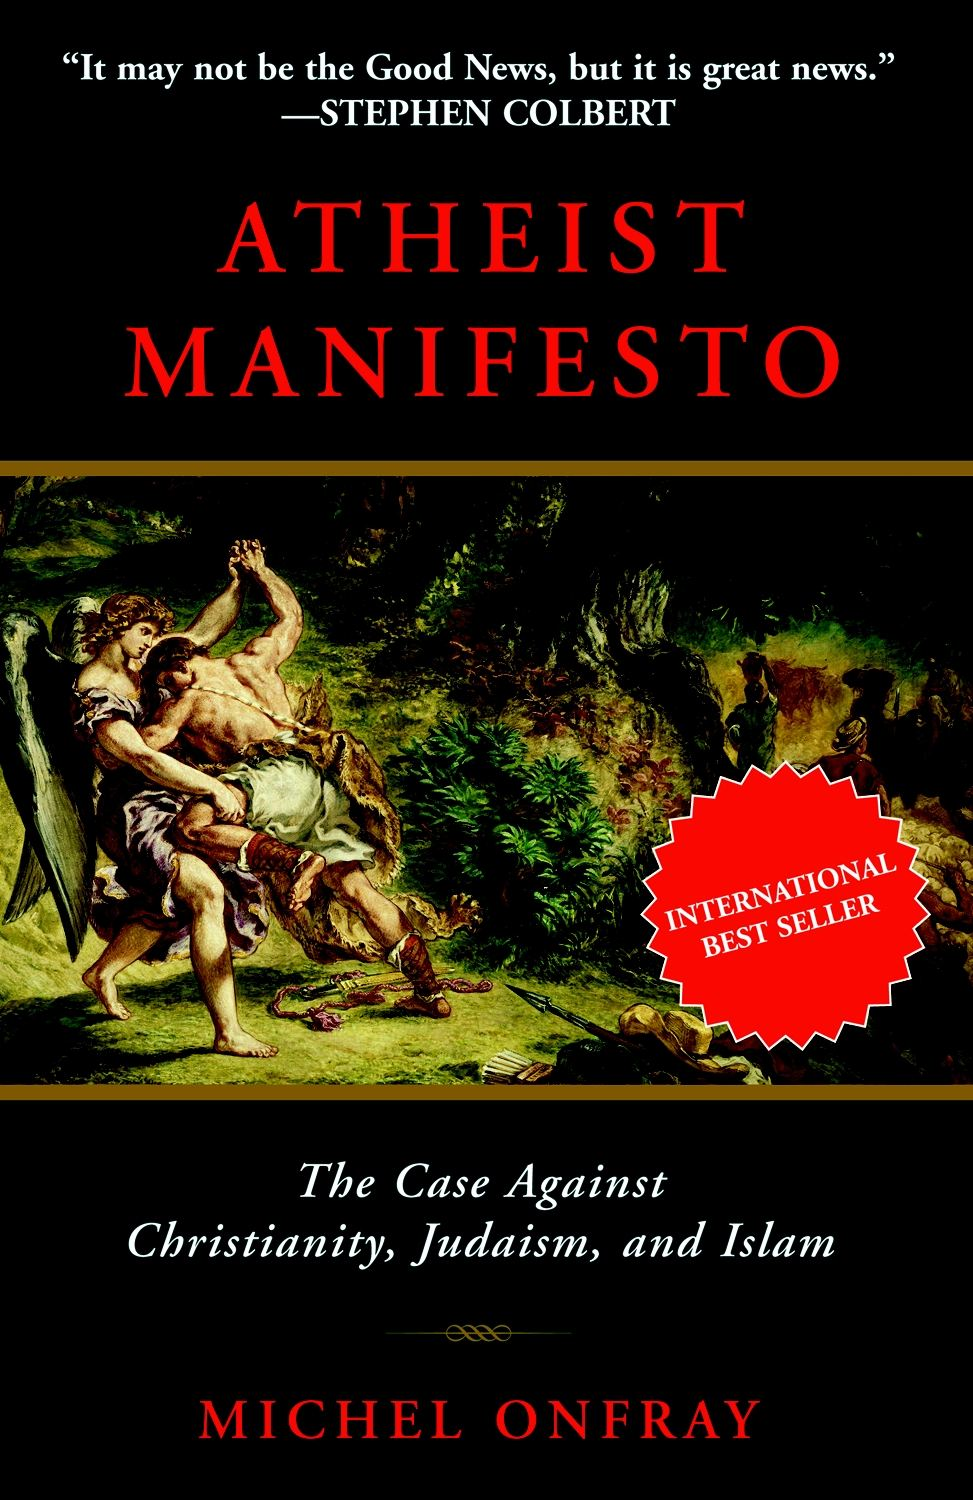 Atheist Manifesto: The Case Against Christianity, Judaism, and Islam By: Michel Onfray